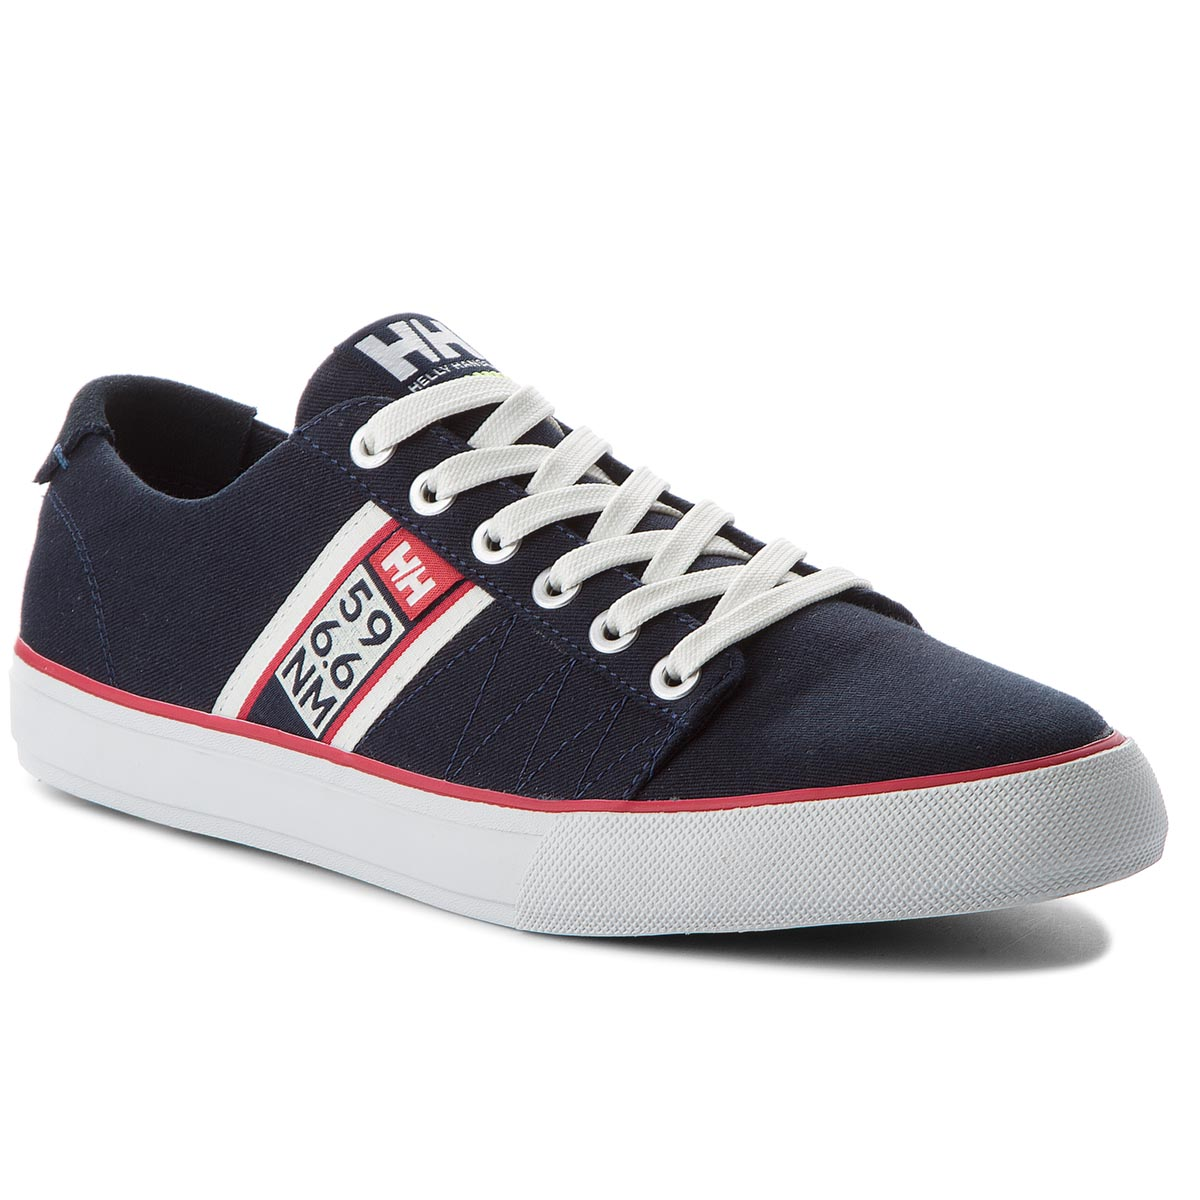 Teniși HELLY HANSEN - Salt Flag F-1 113-01.597 Navy/Off White/Flag Red